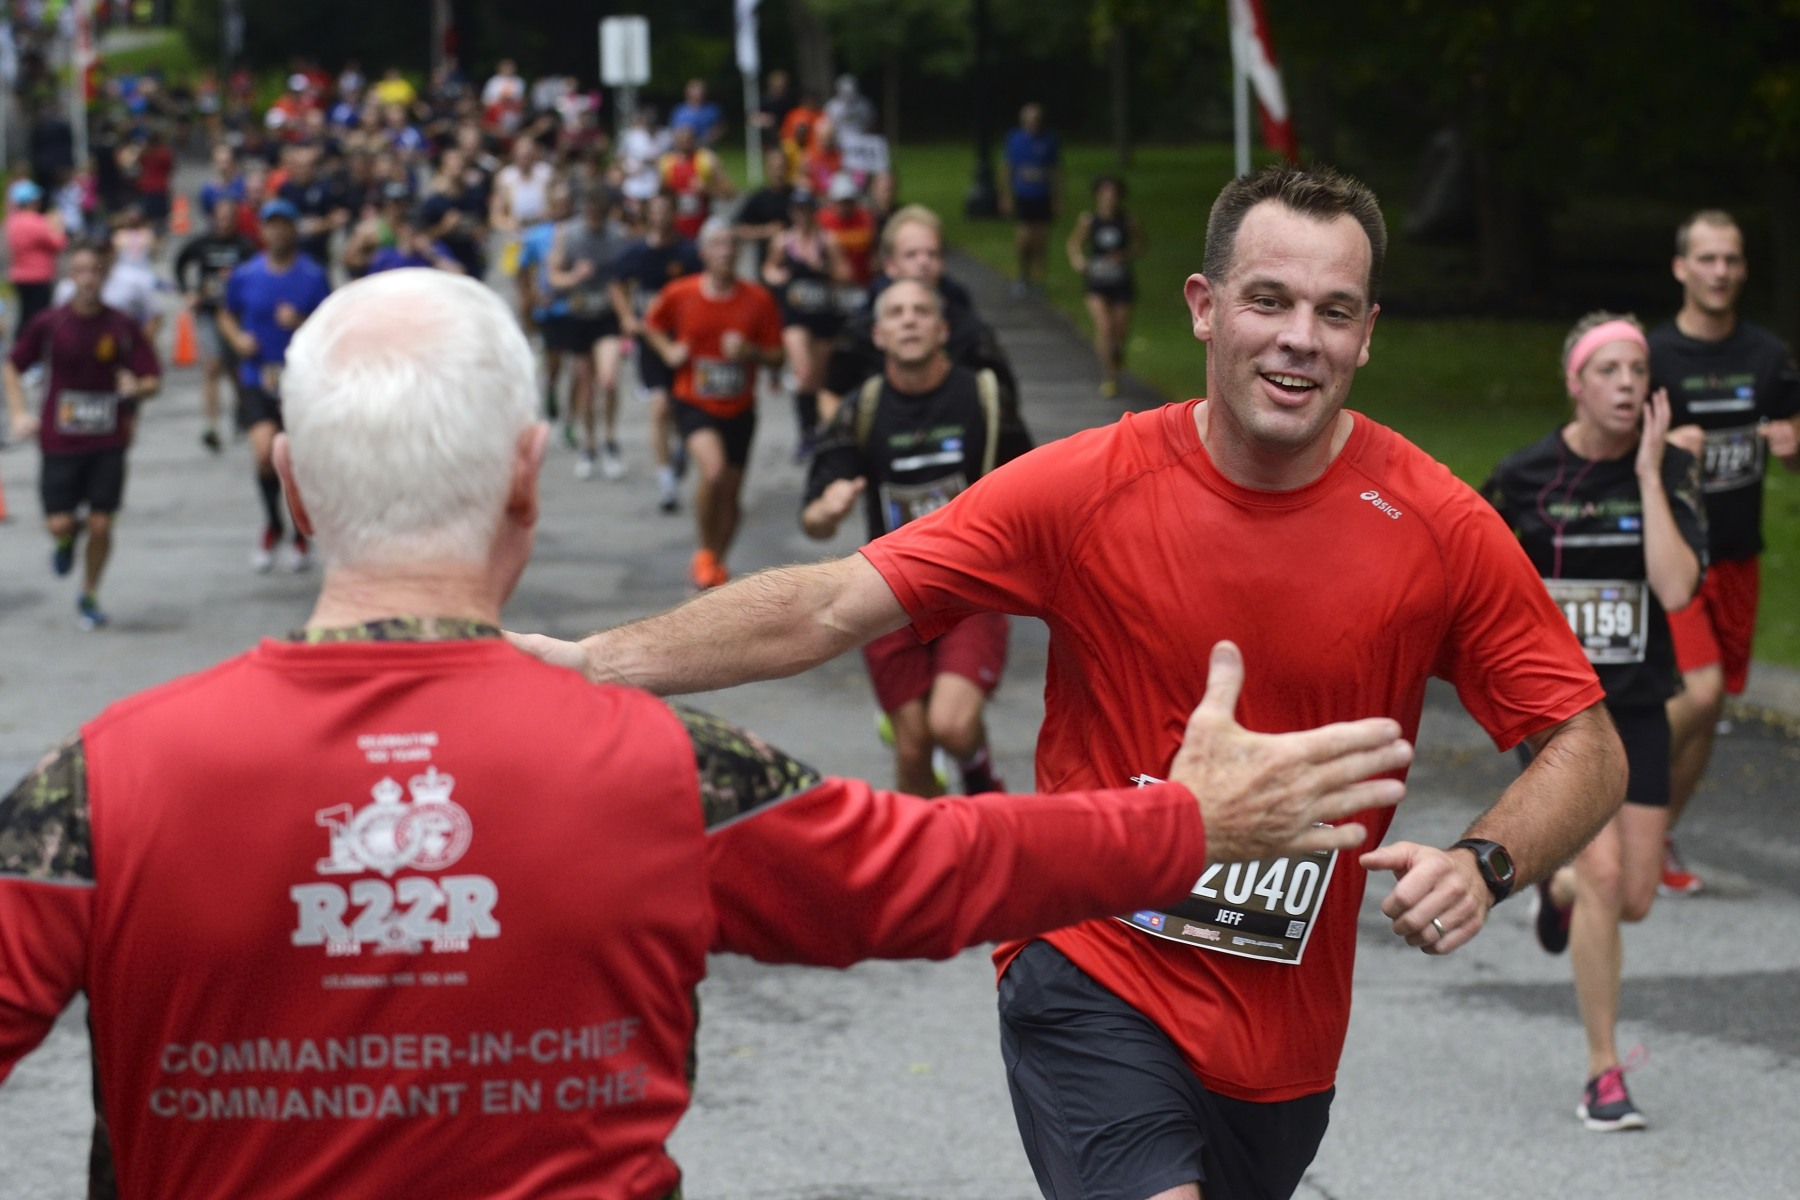 The Governor General then headed back to Rideau Hall where he greeted and cheered half-marathon participants.